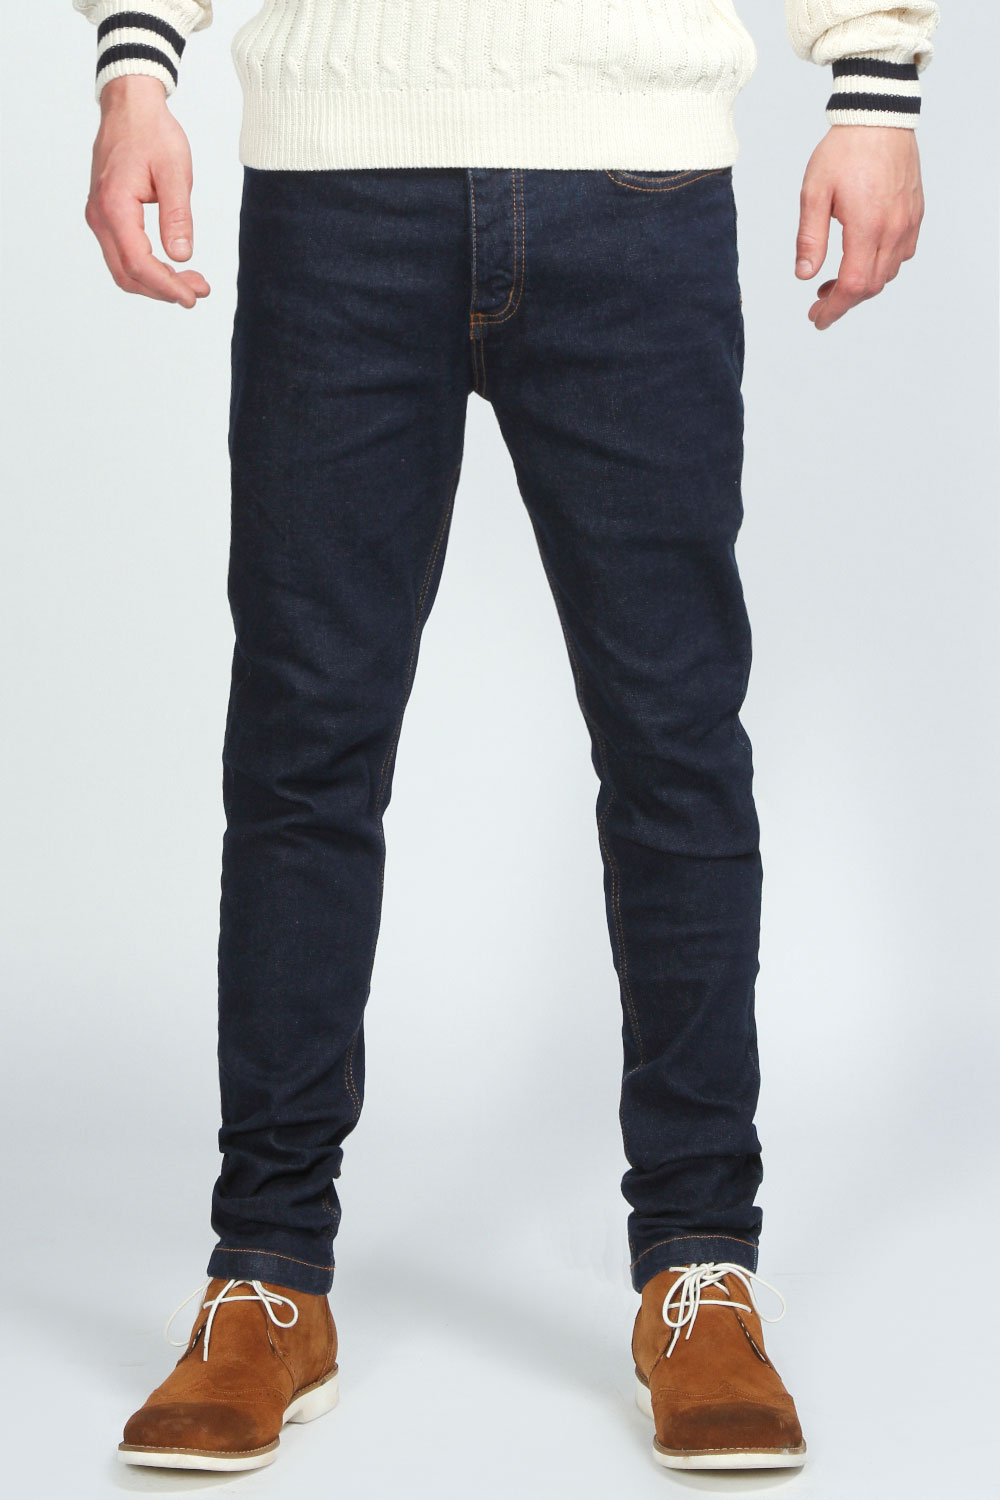 Boohoo-Mens-Black-Blue-Wash-Skinny-Jean-in-Denim-Blue